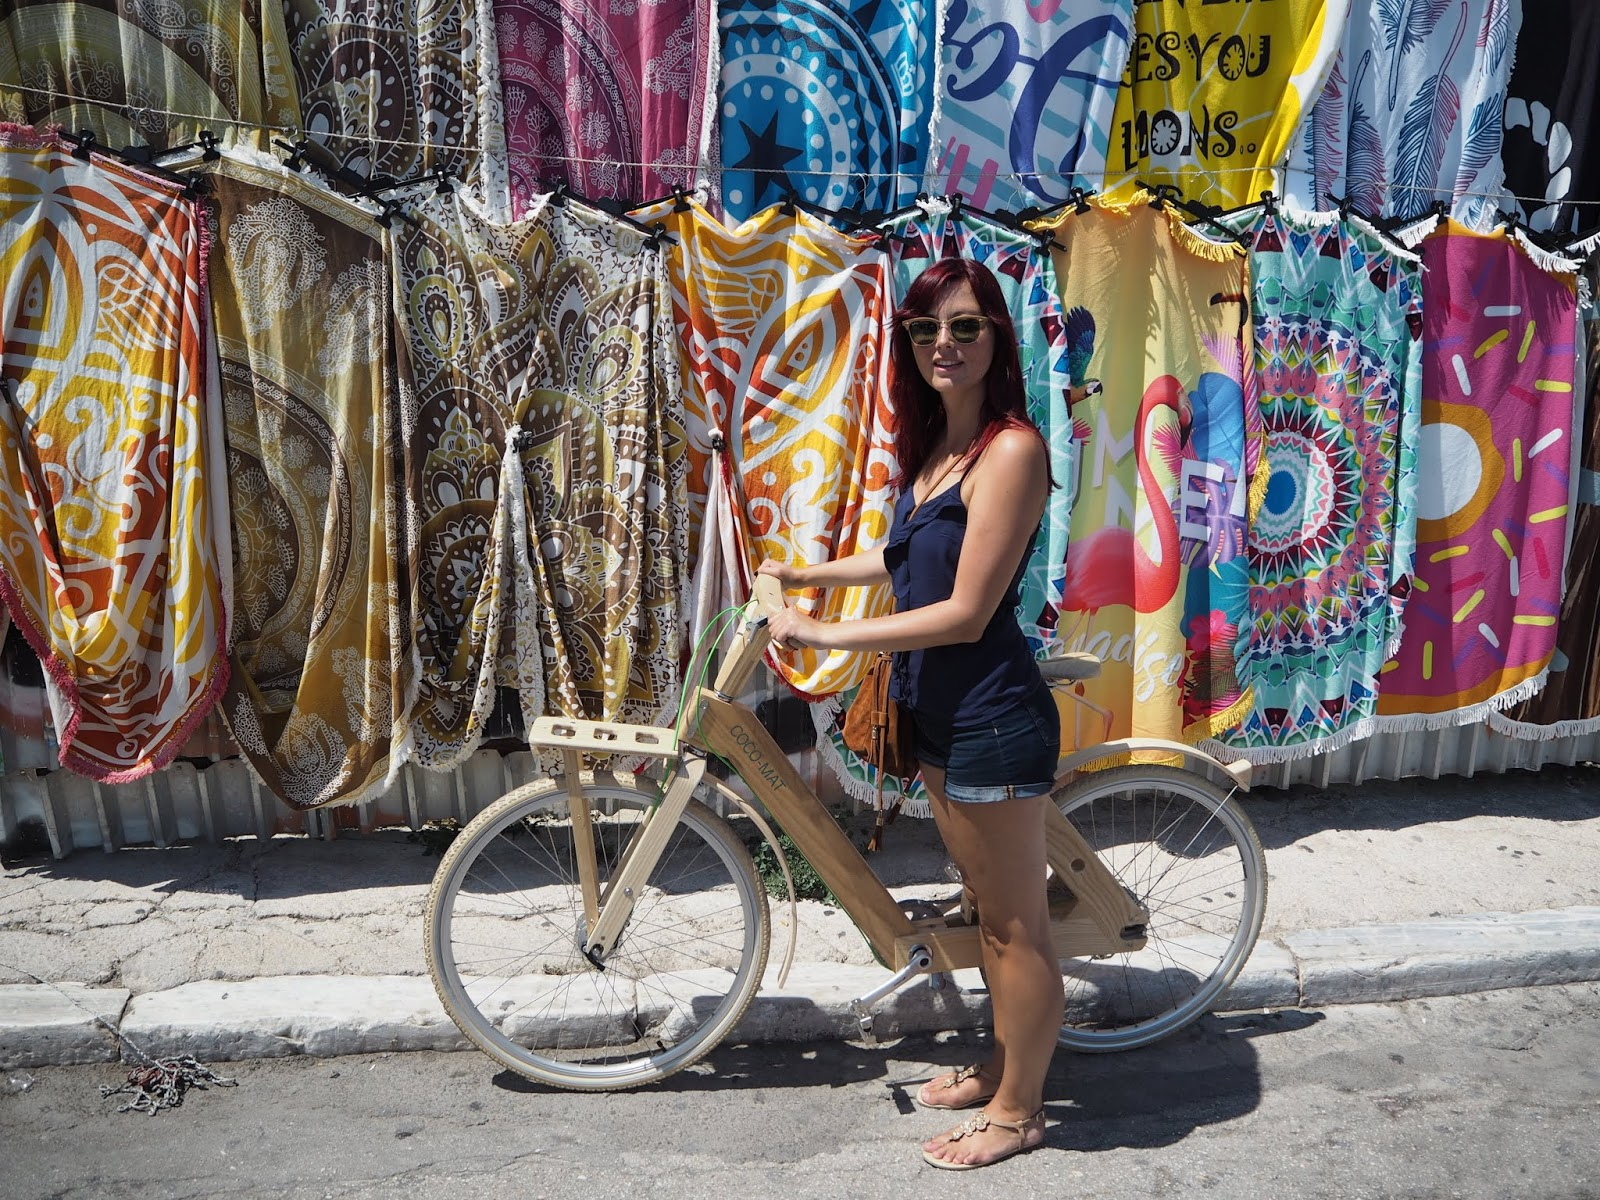 sightseeing tour on a bike in athens